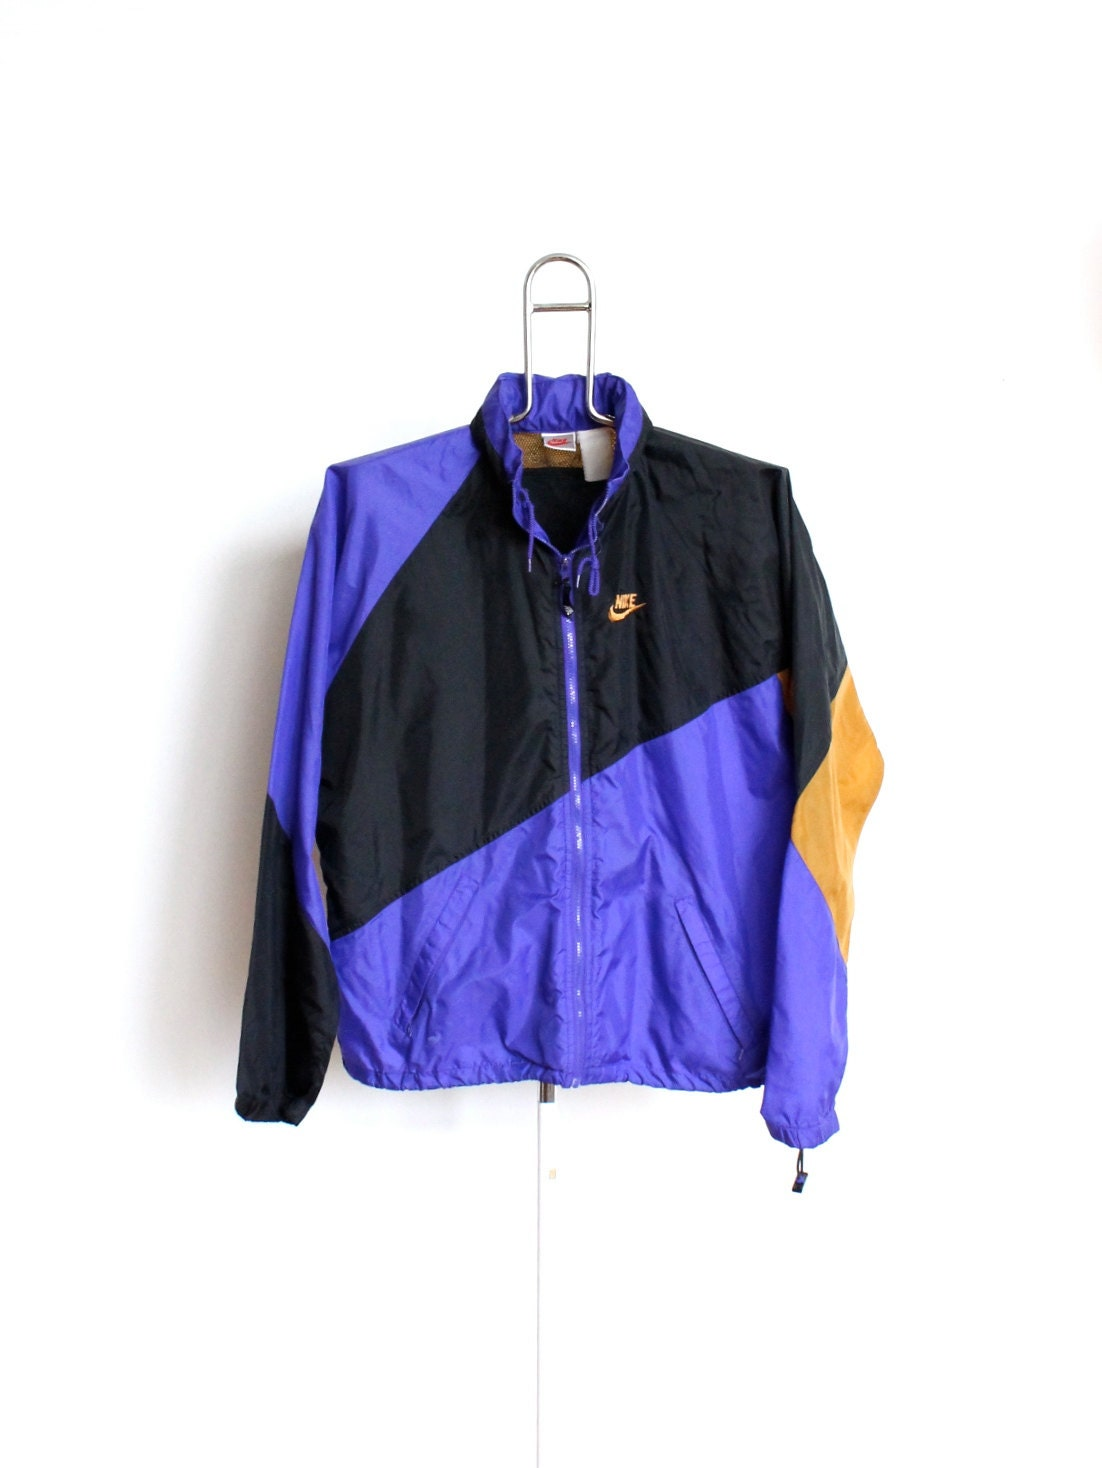 Black Windbreaker Jacket Mens